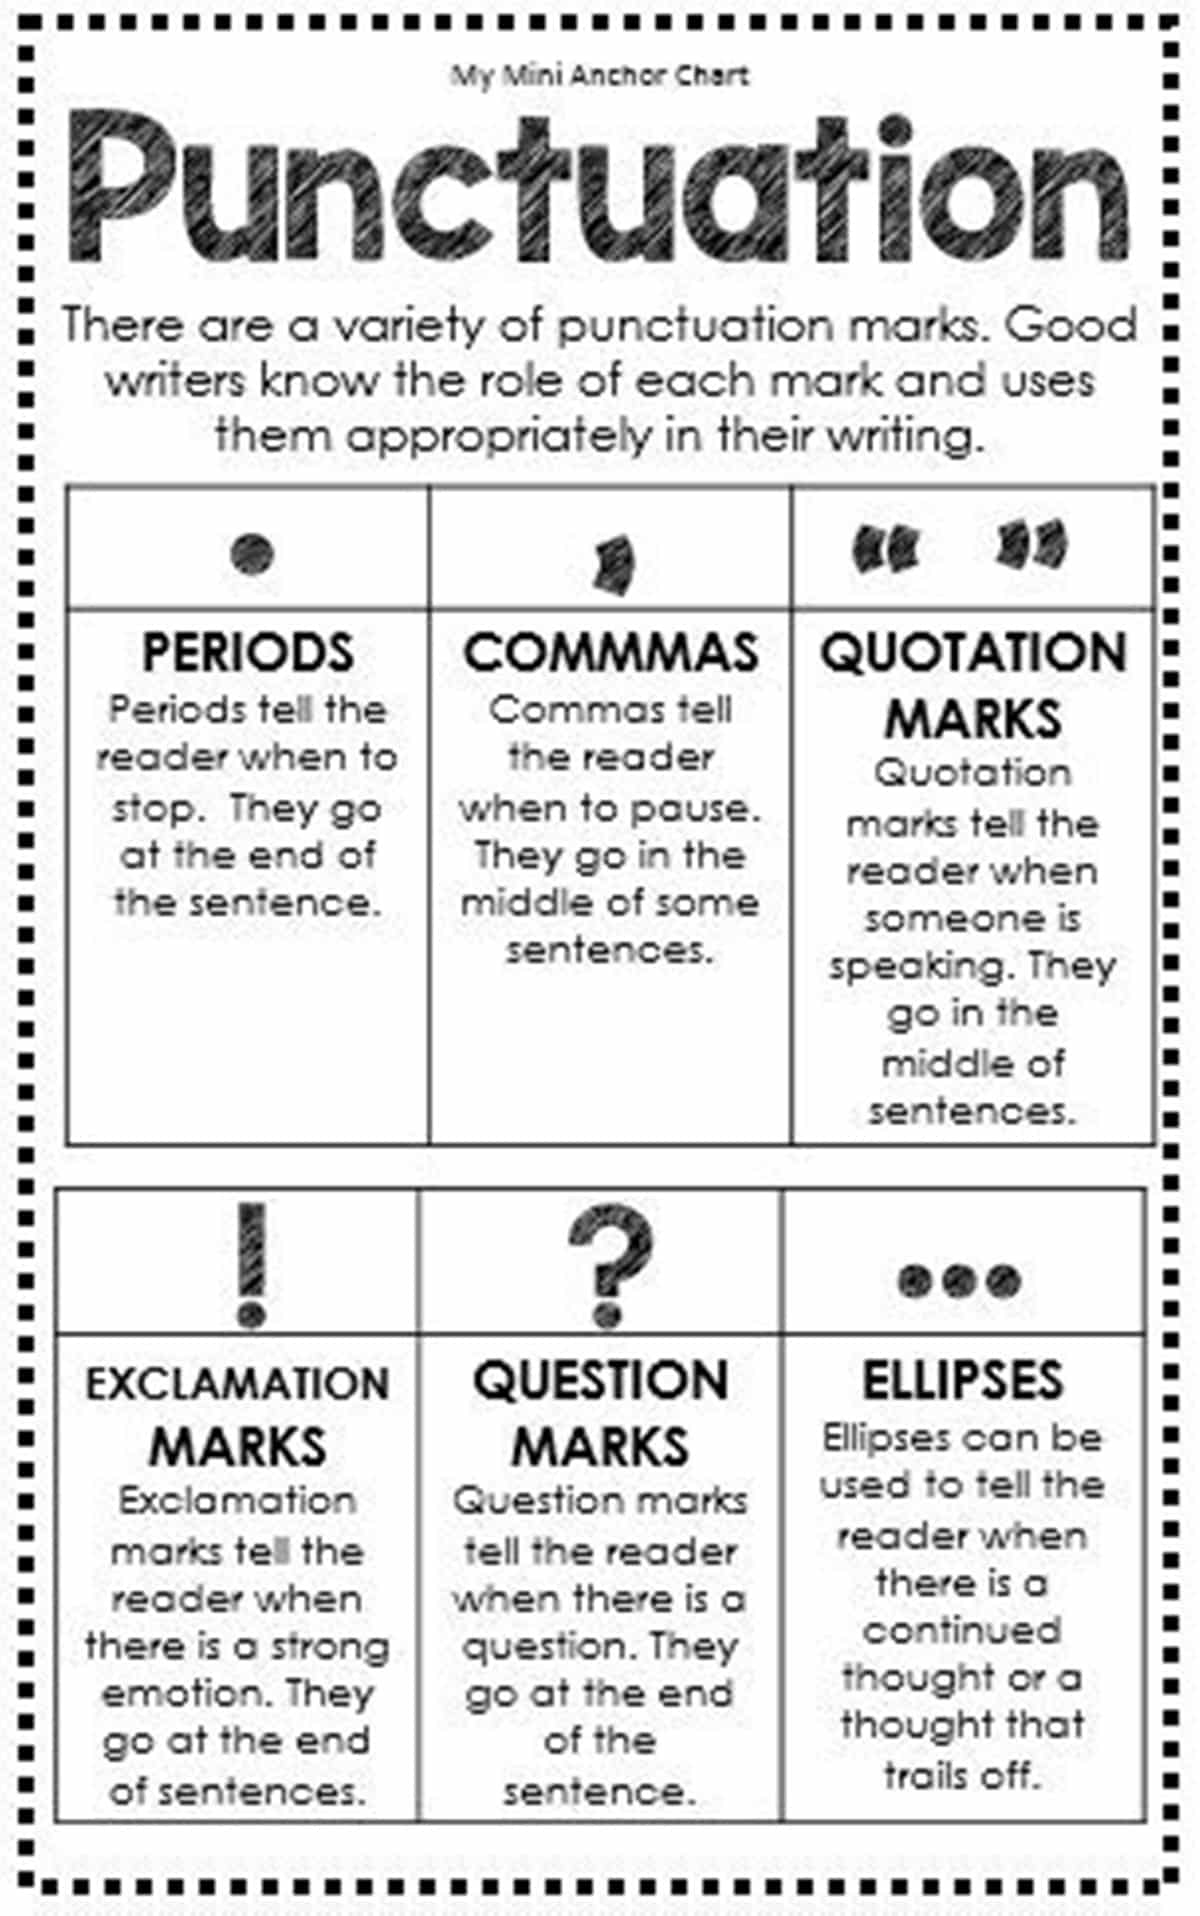 How To Use English Punctuation Marks Correctly